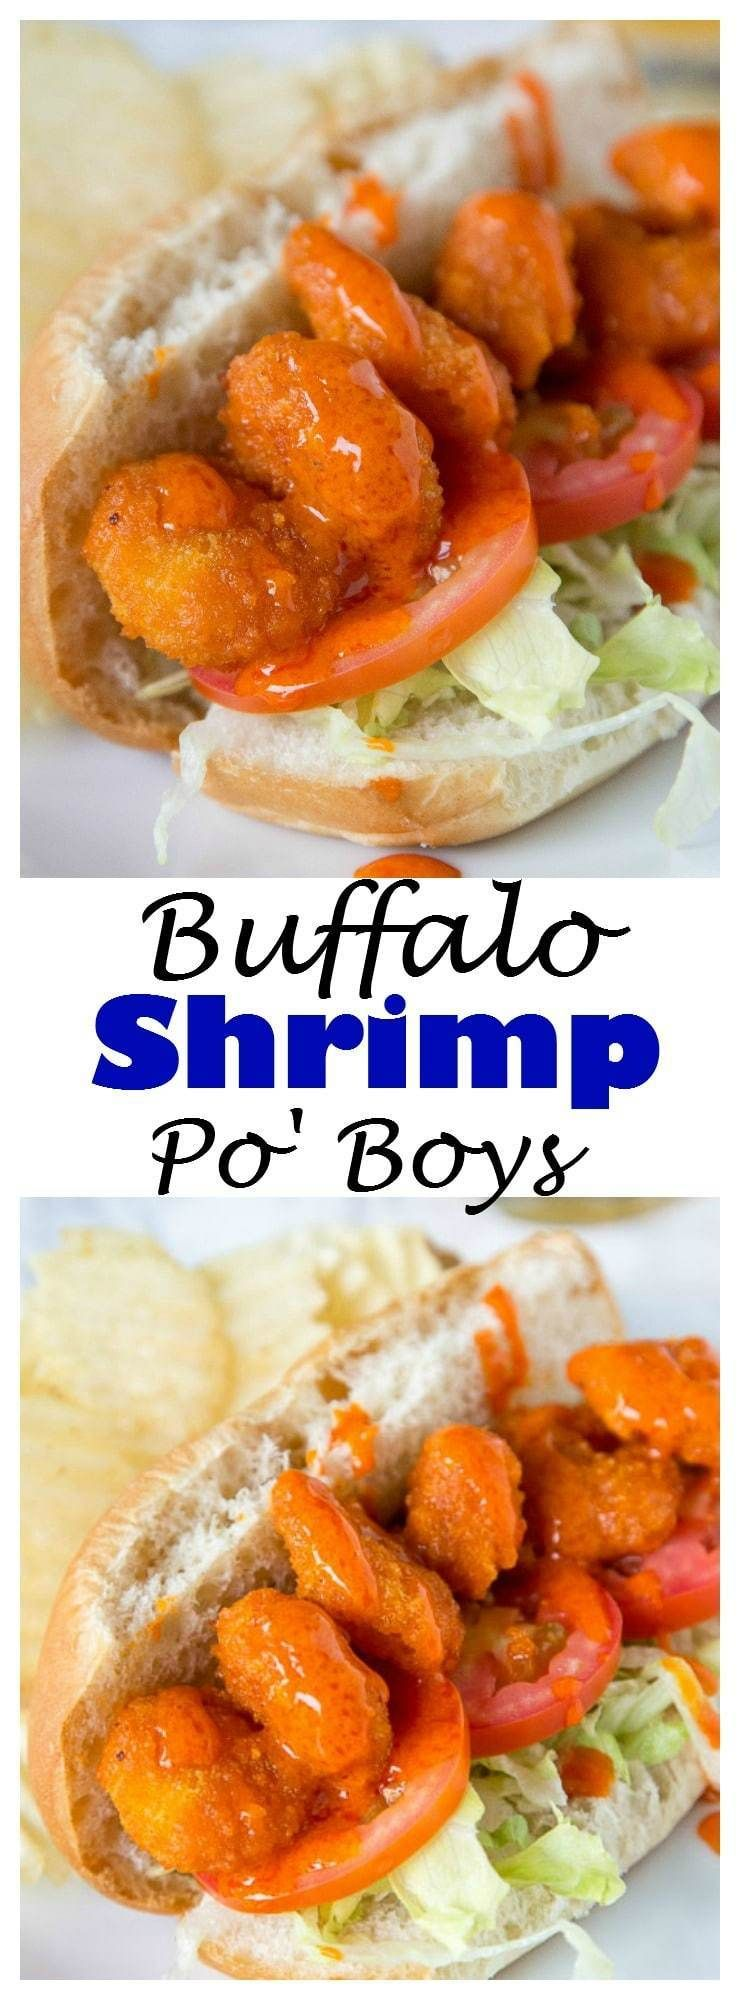 Buffalo Shrimp Po Boys - A fun twist on the classic Po' Boy using crispy fried buffalo shrimp (short cut from the store)! Add some ranch dressing or blue cheese to cool it down, or drizzle on even more buffalo sauce! #buffaloshrimp